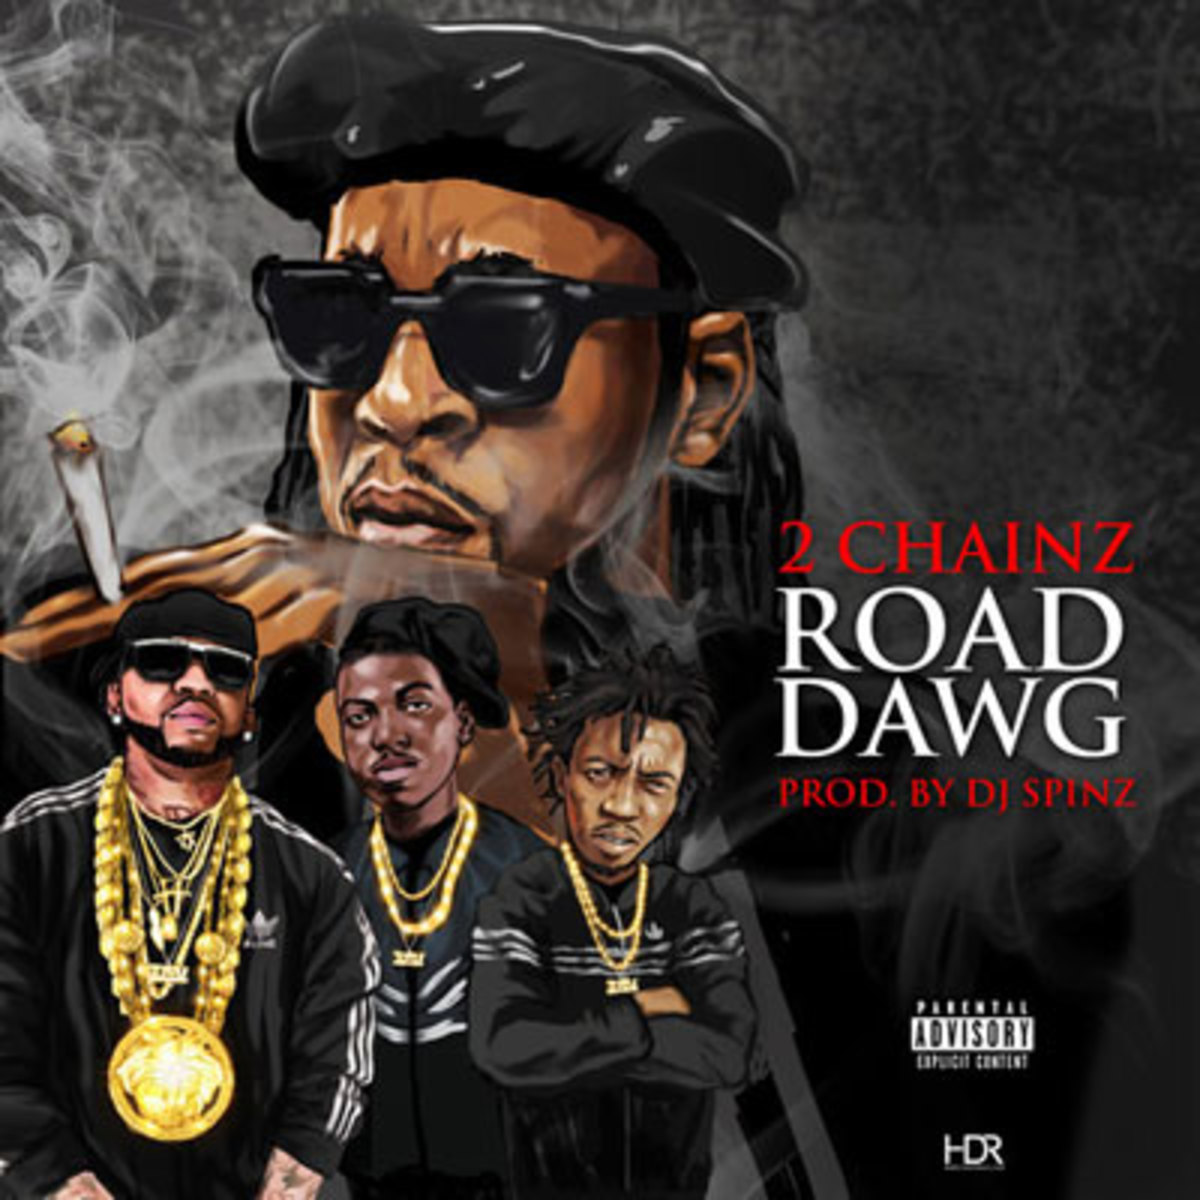 2chainz-roaddawg.jpg